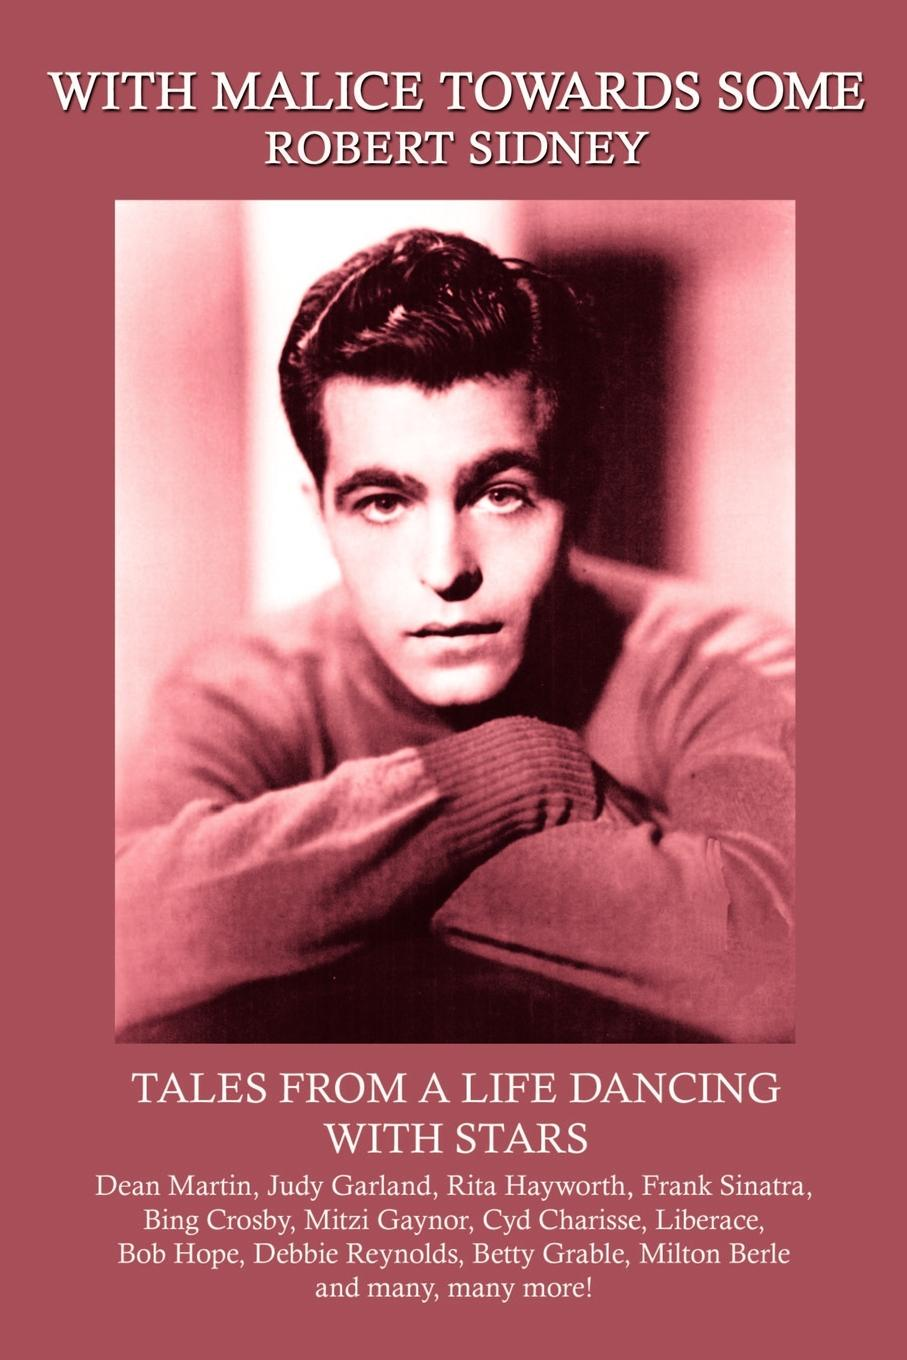 Robert Sidney With Malice Towards Some. Tales From a Life Dancing Stars